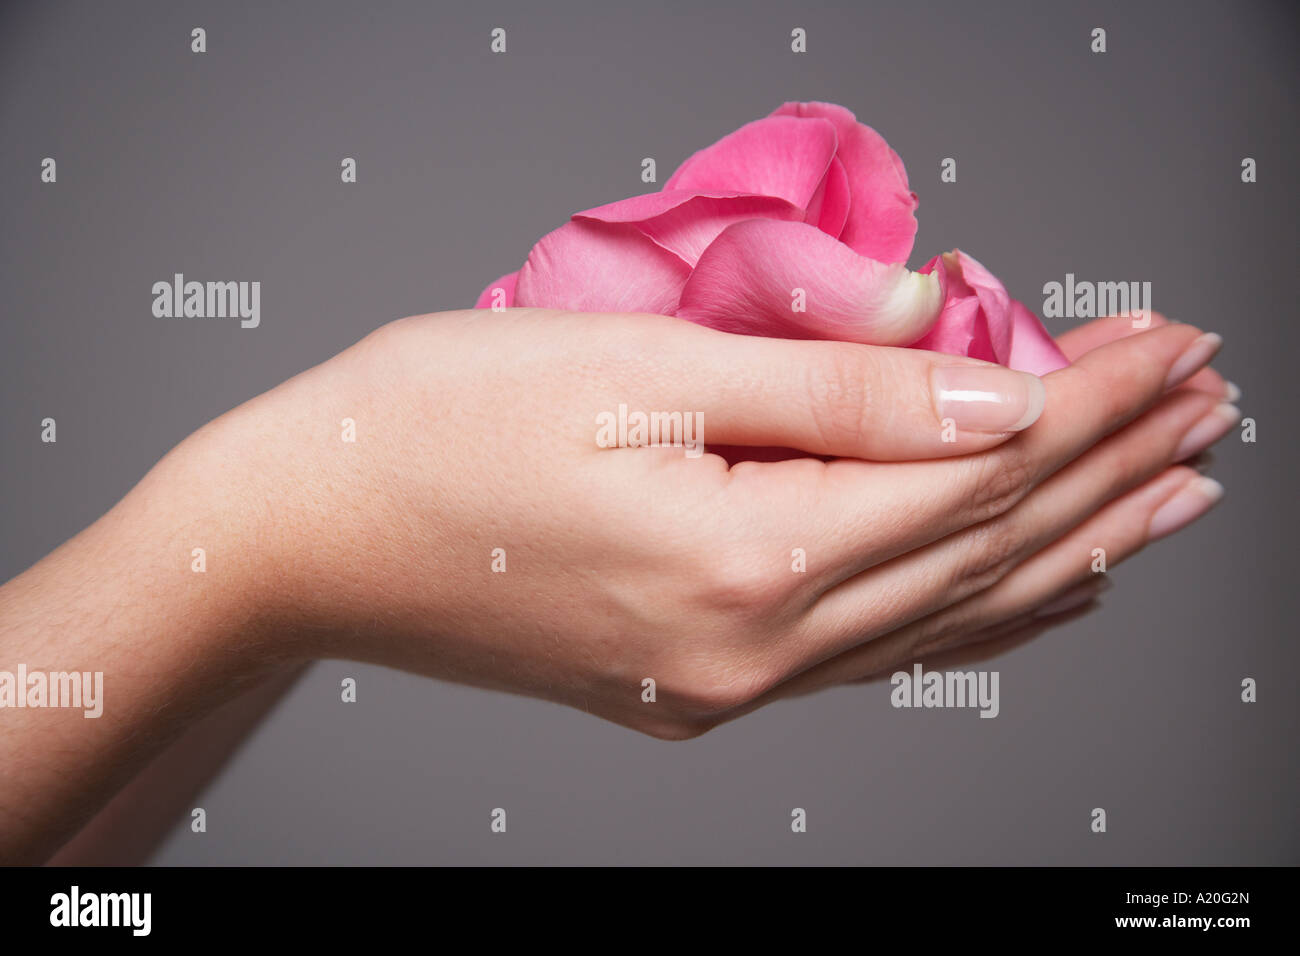 Woman cupping hands full of pink rose petals, close-up on hands Stock Photo